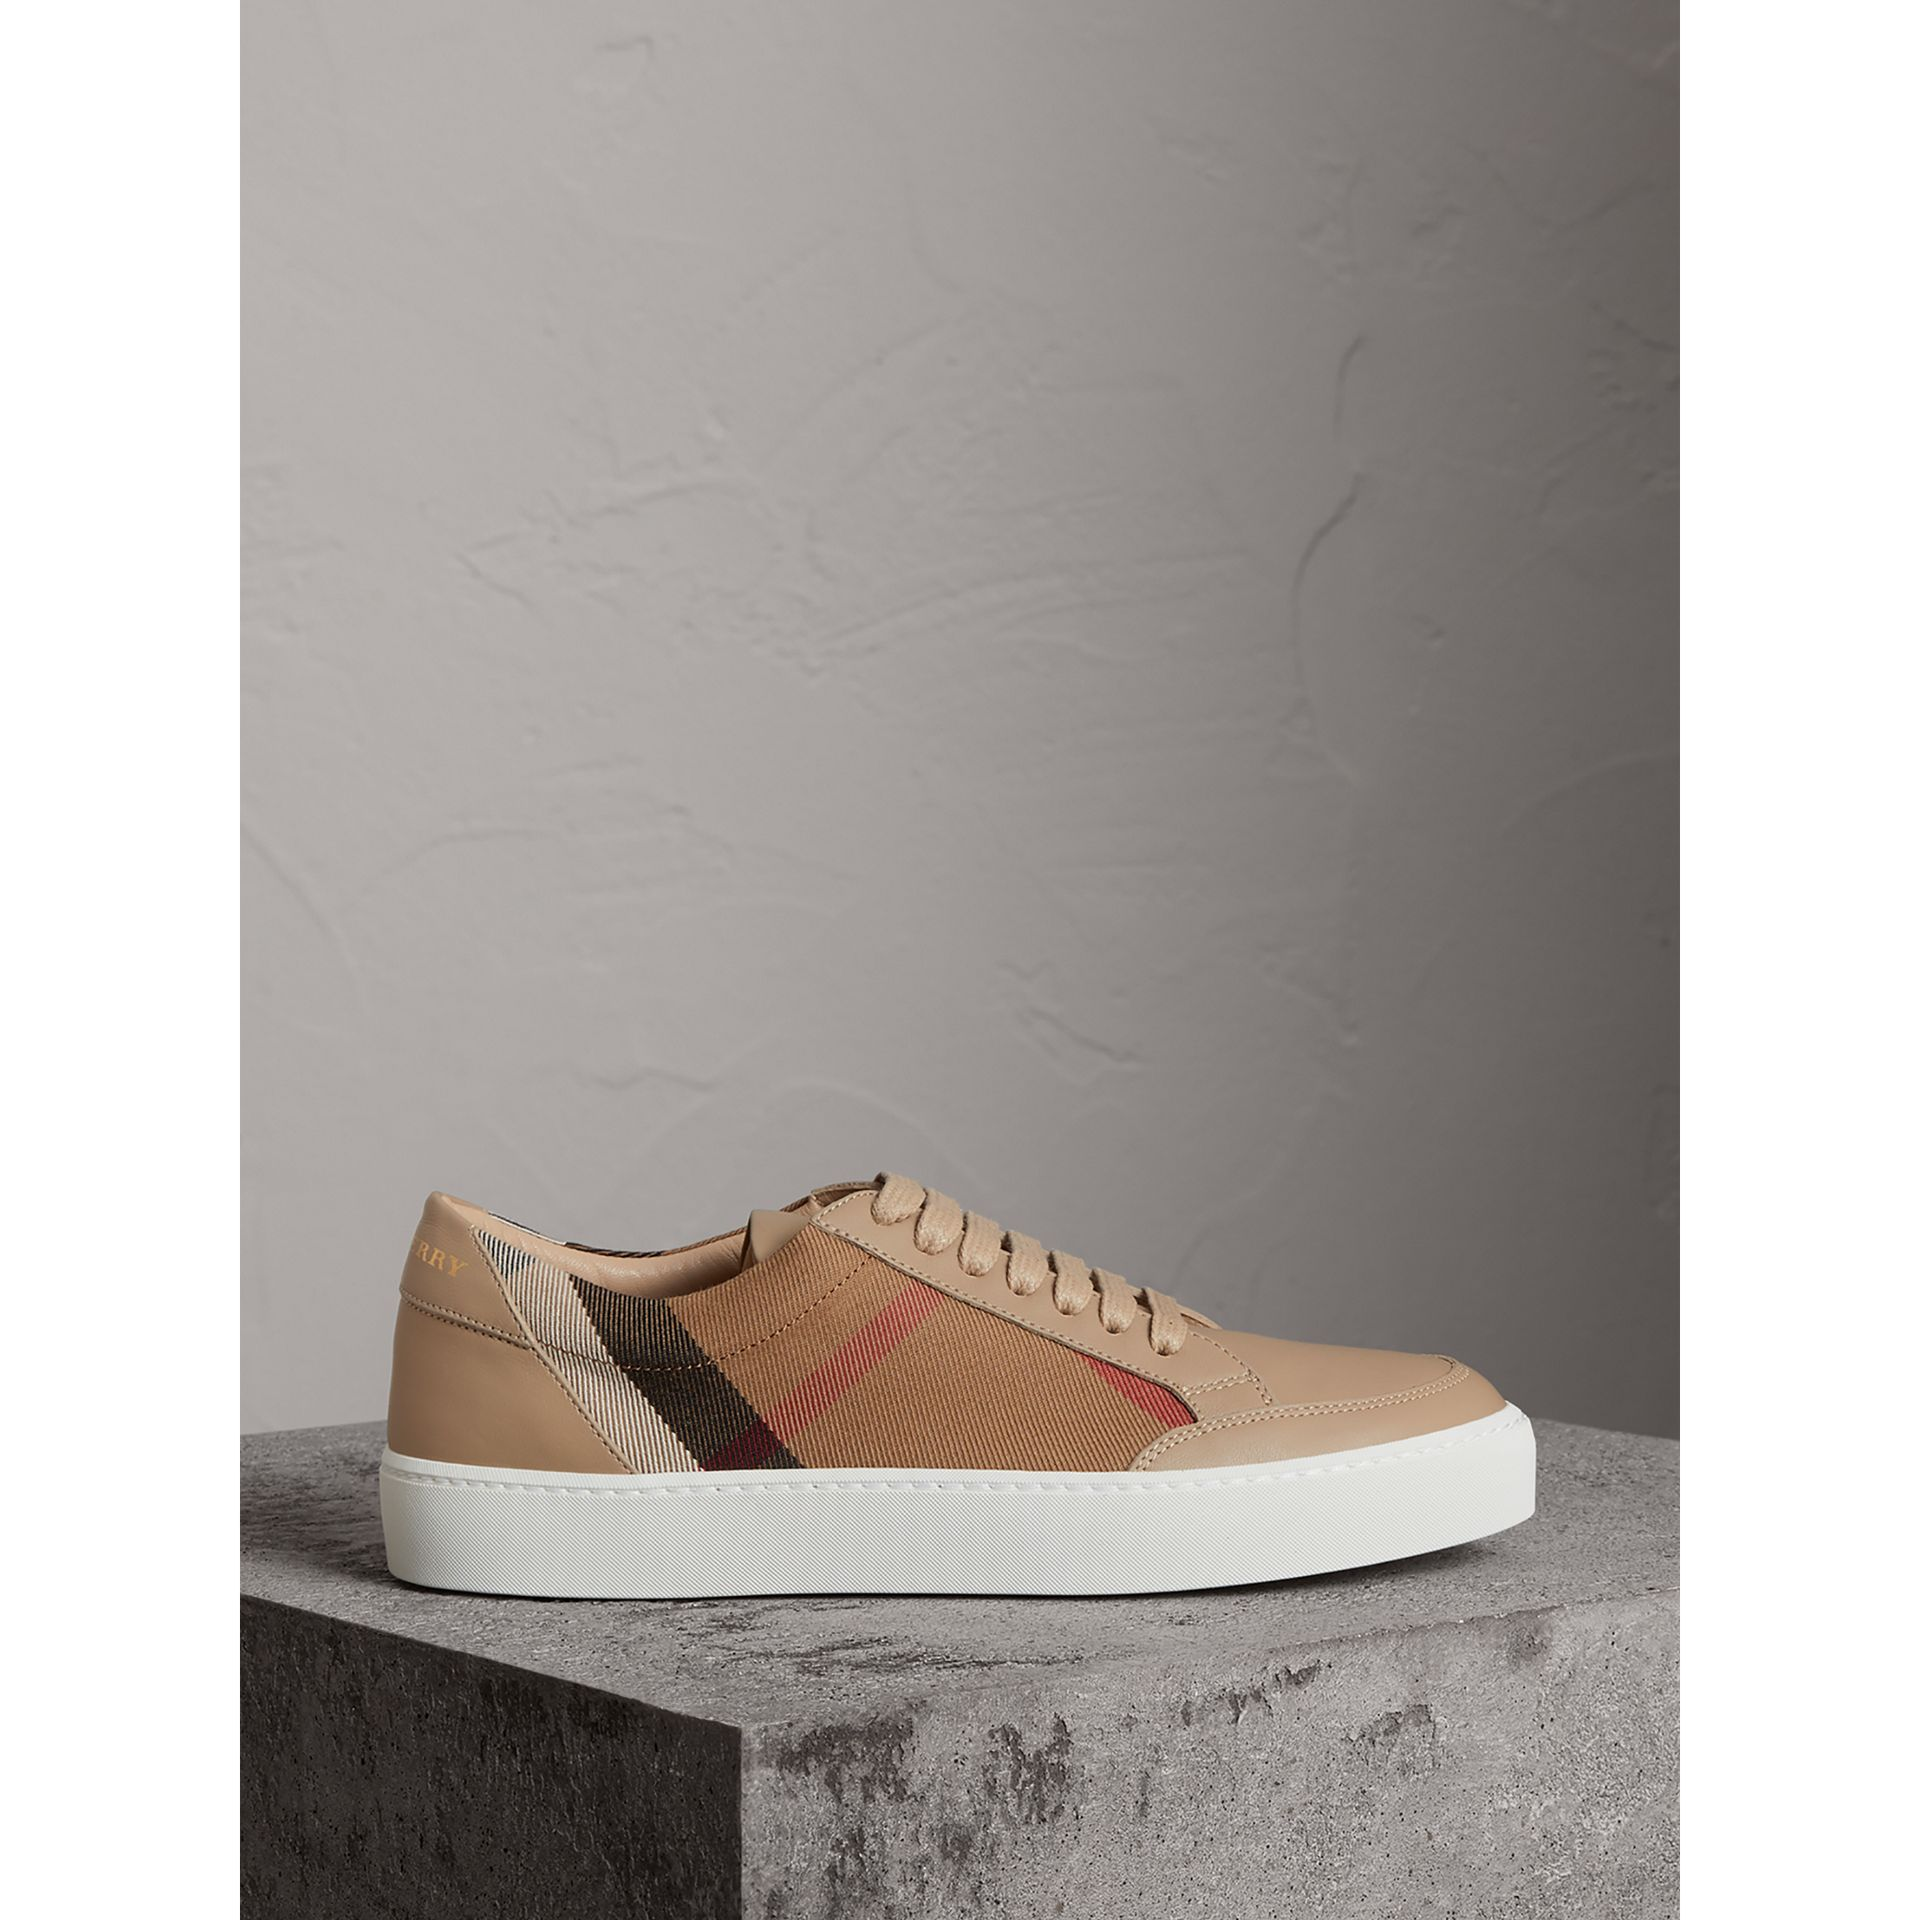 Check Detail Leather Trainers in House Check/ Nude - Women | Burberry - gallery image 3